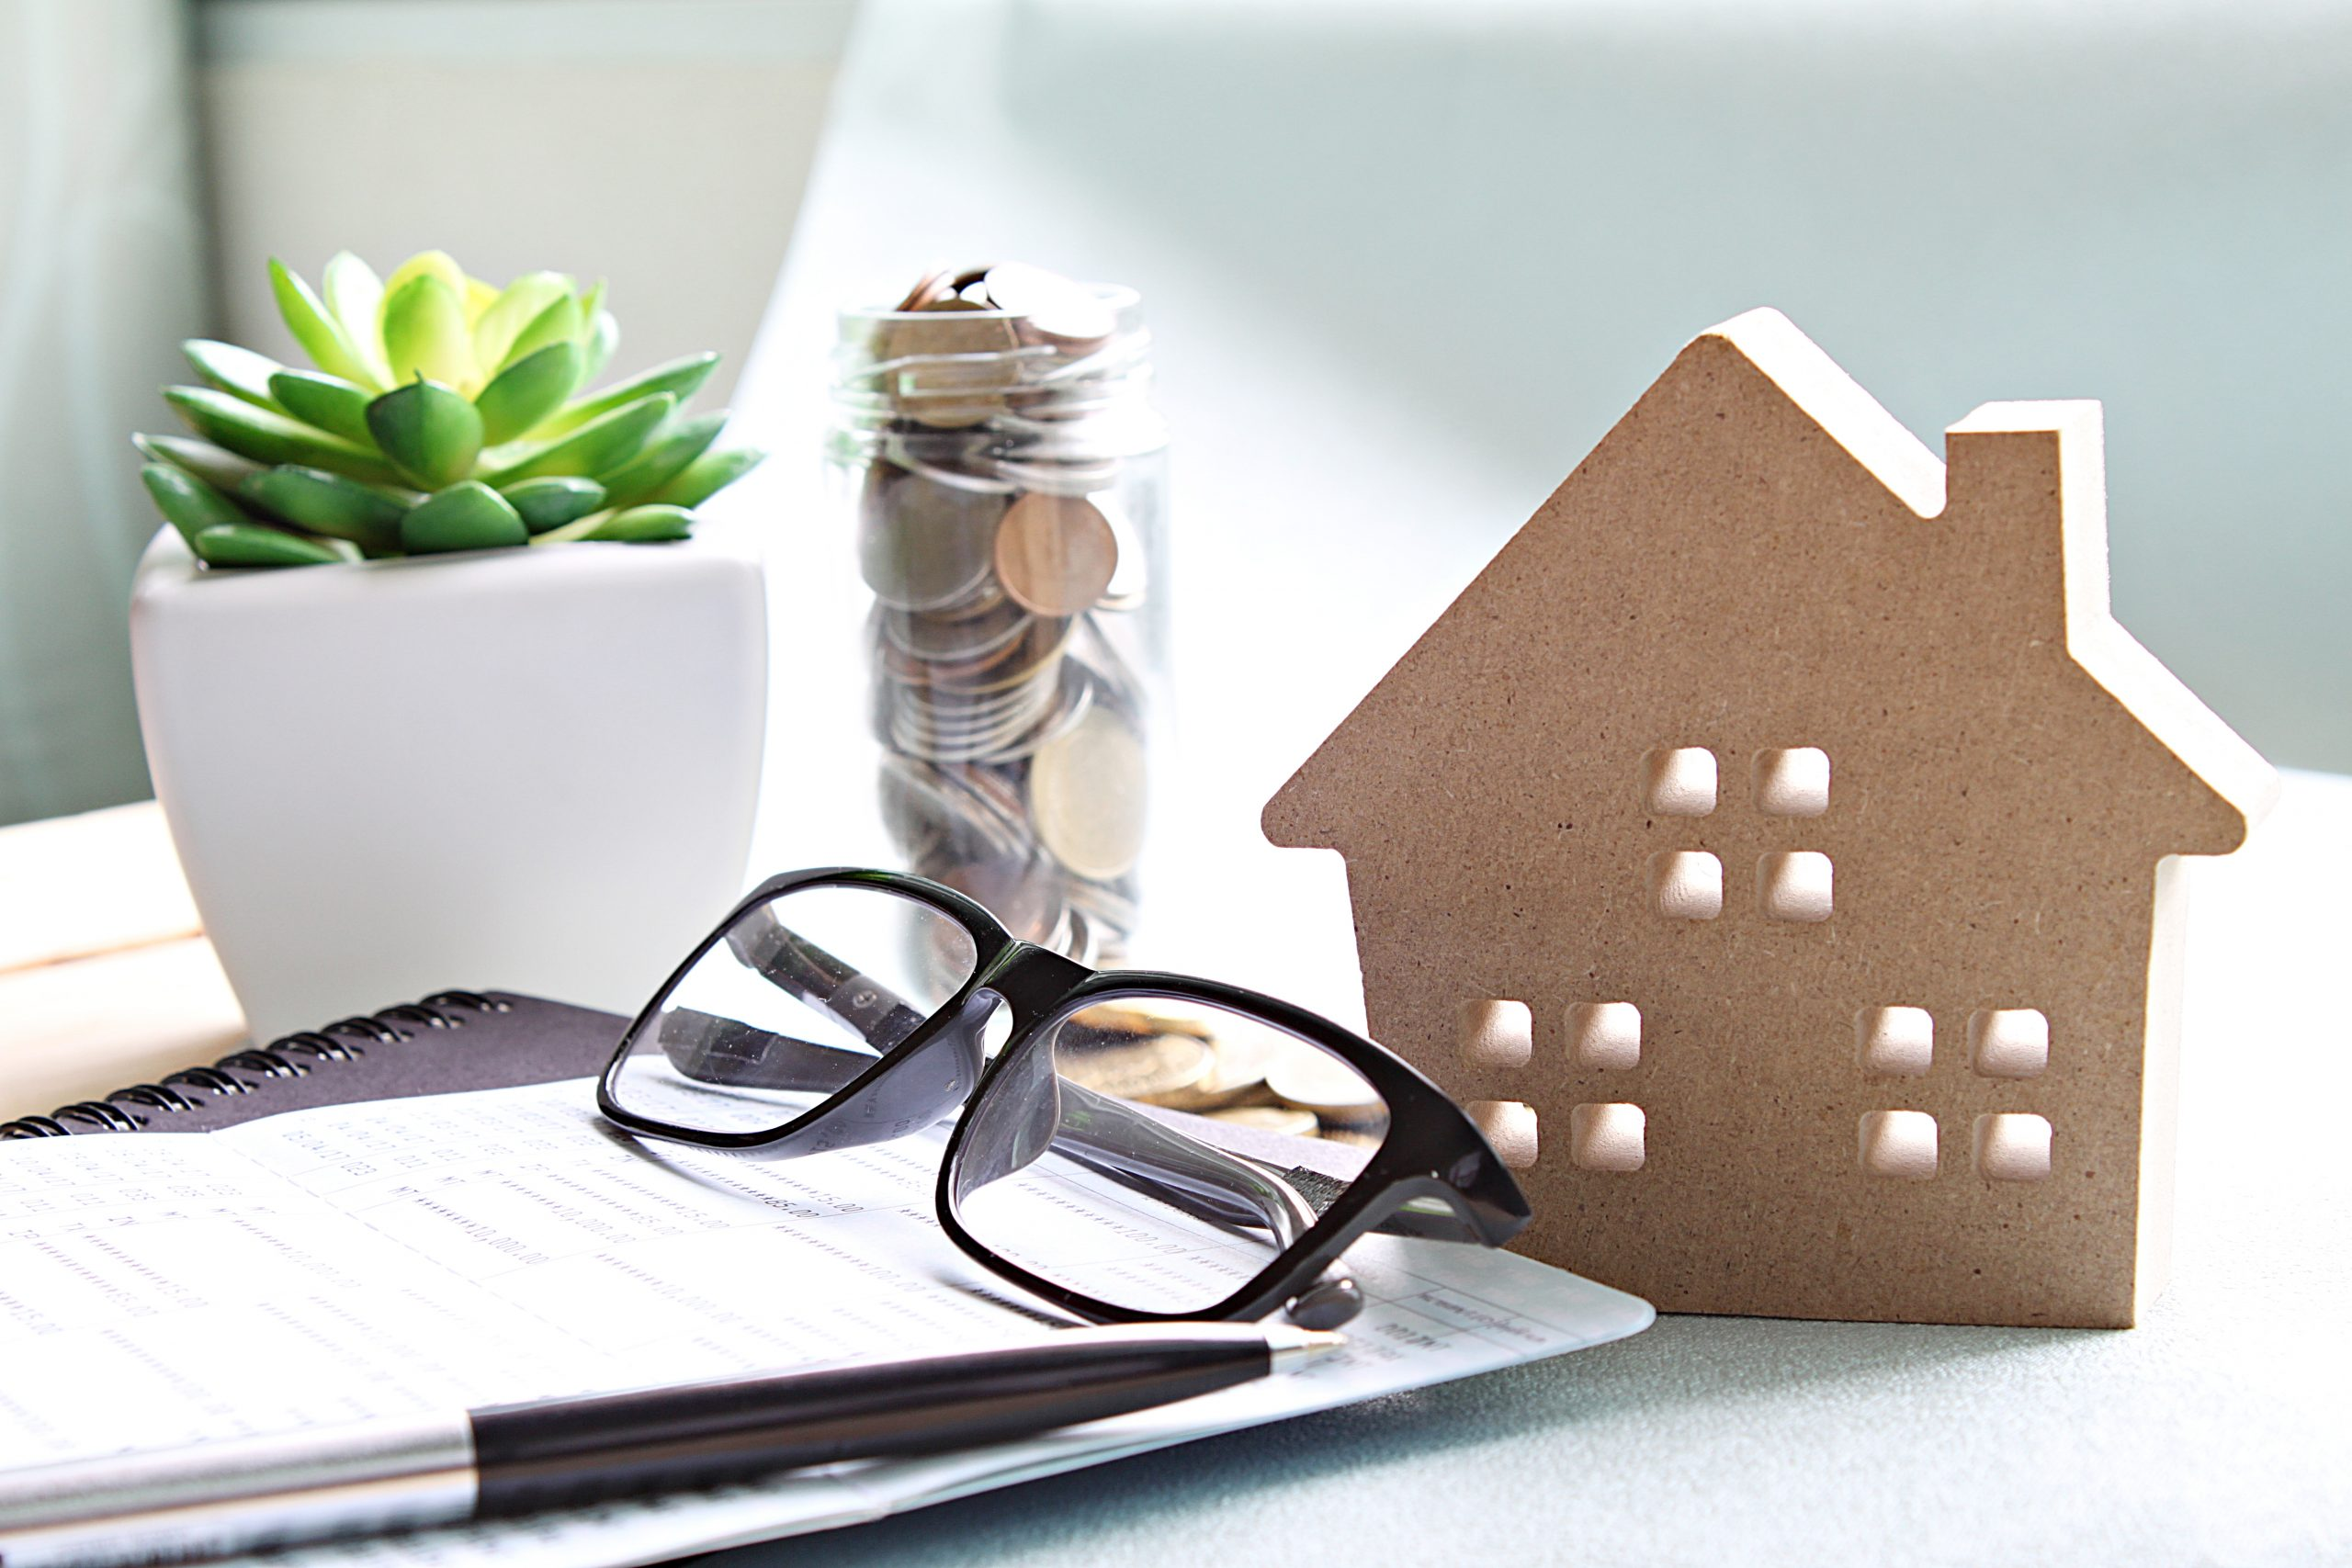 Reverse Mortgage Facts Vs. Fiction: The Best Time to Get a Reverse Mortgage